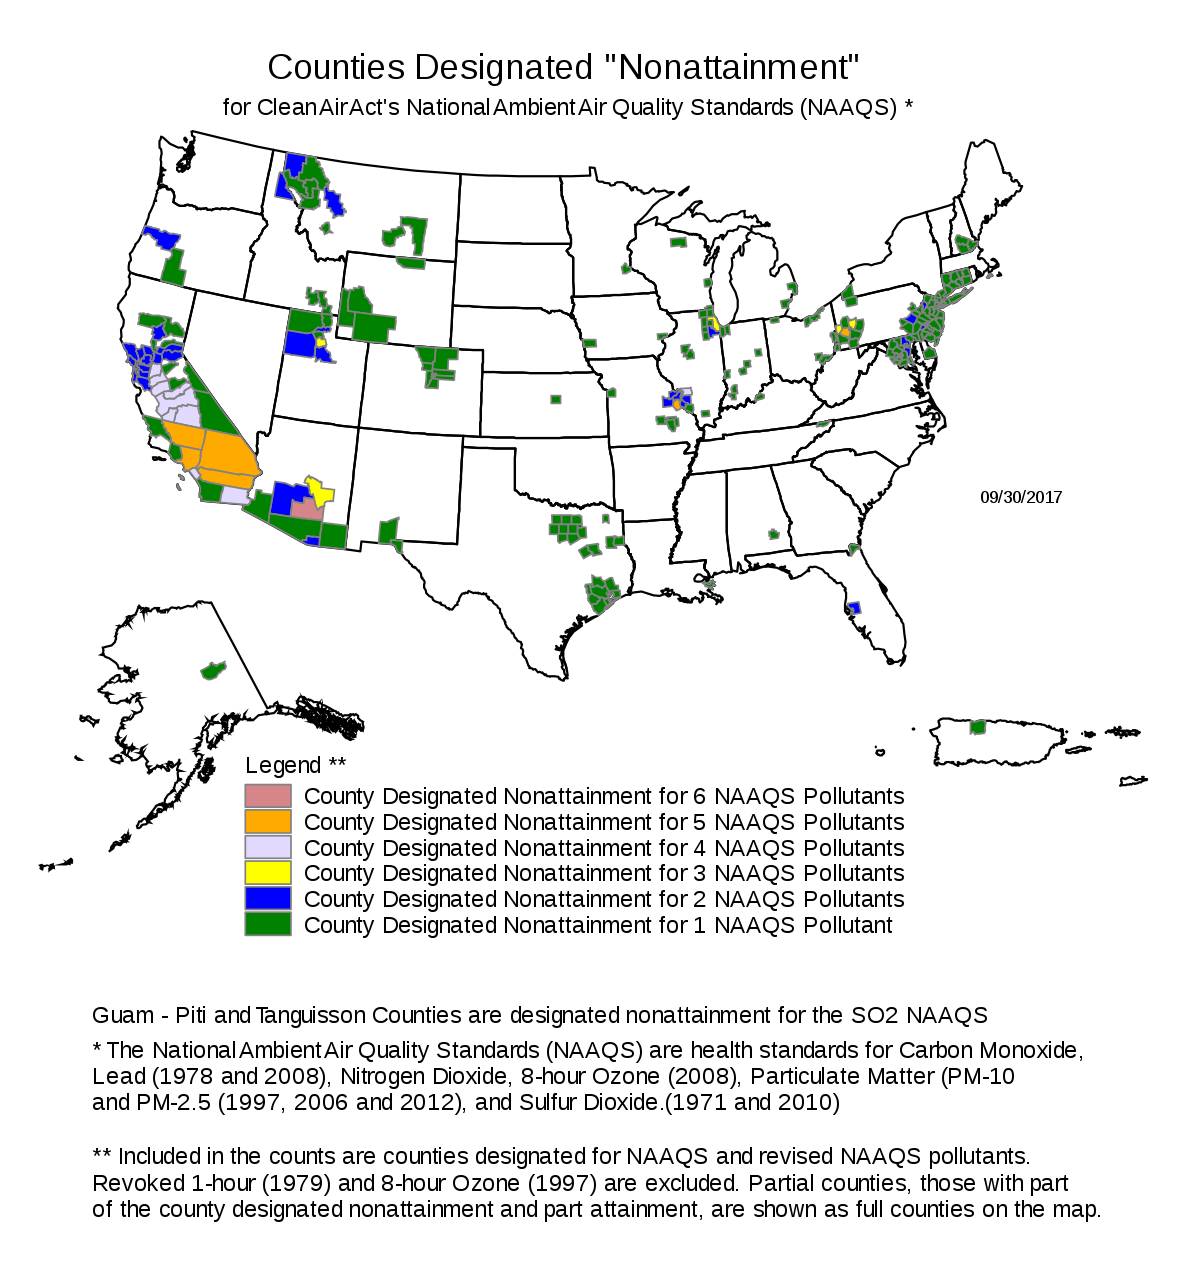 National Ambient Air Quality Standards Png - National Ambient Air Quality Standards - Wikipedia